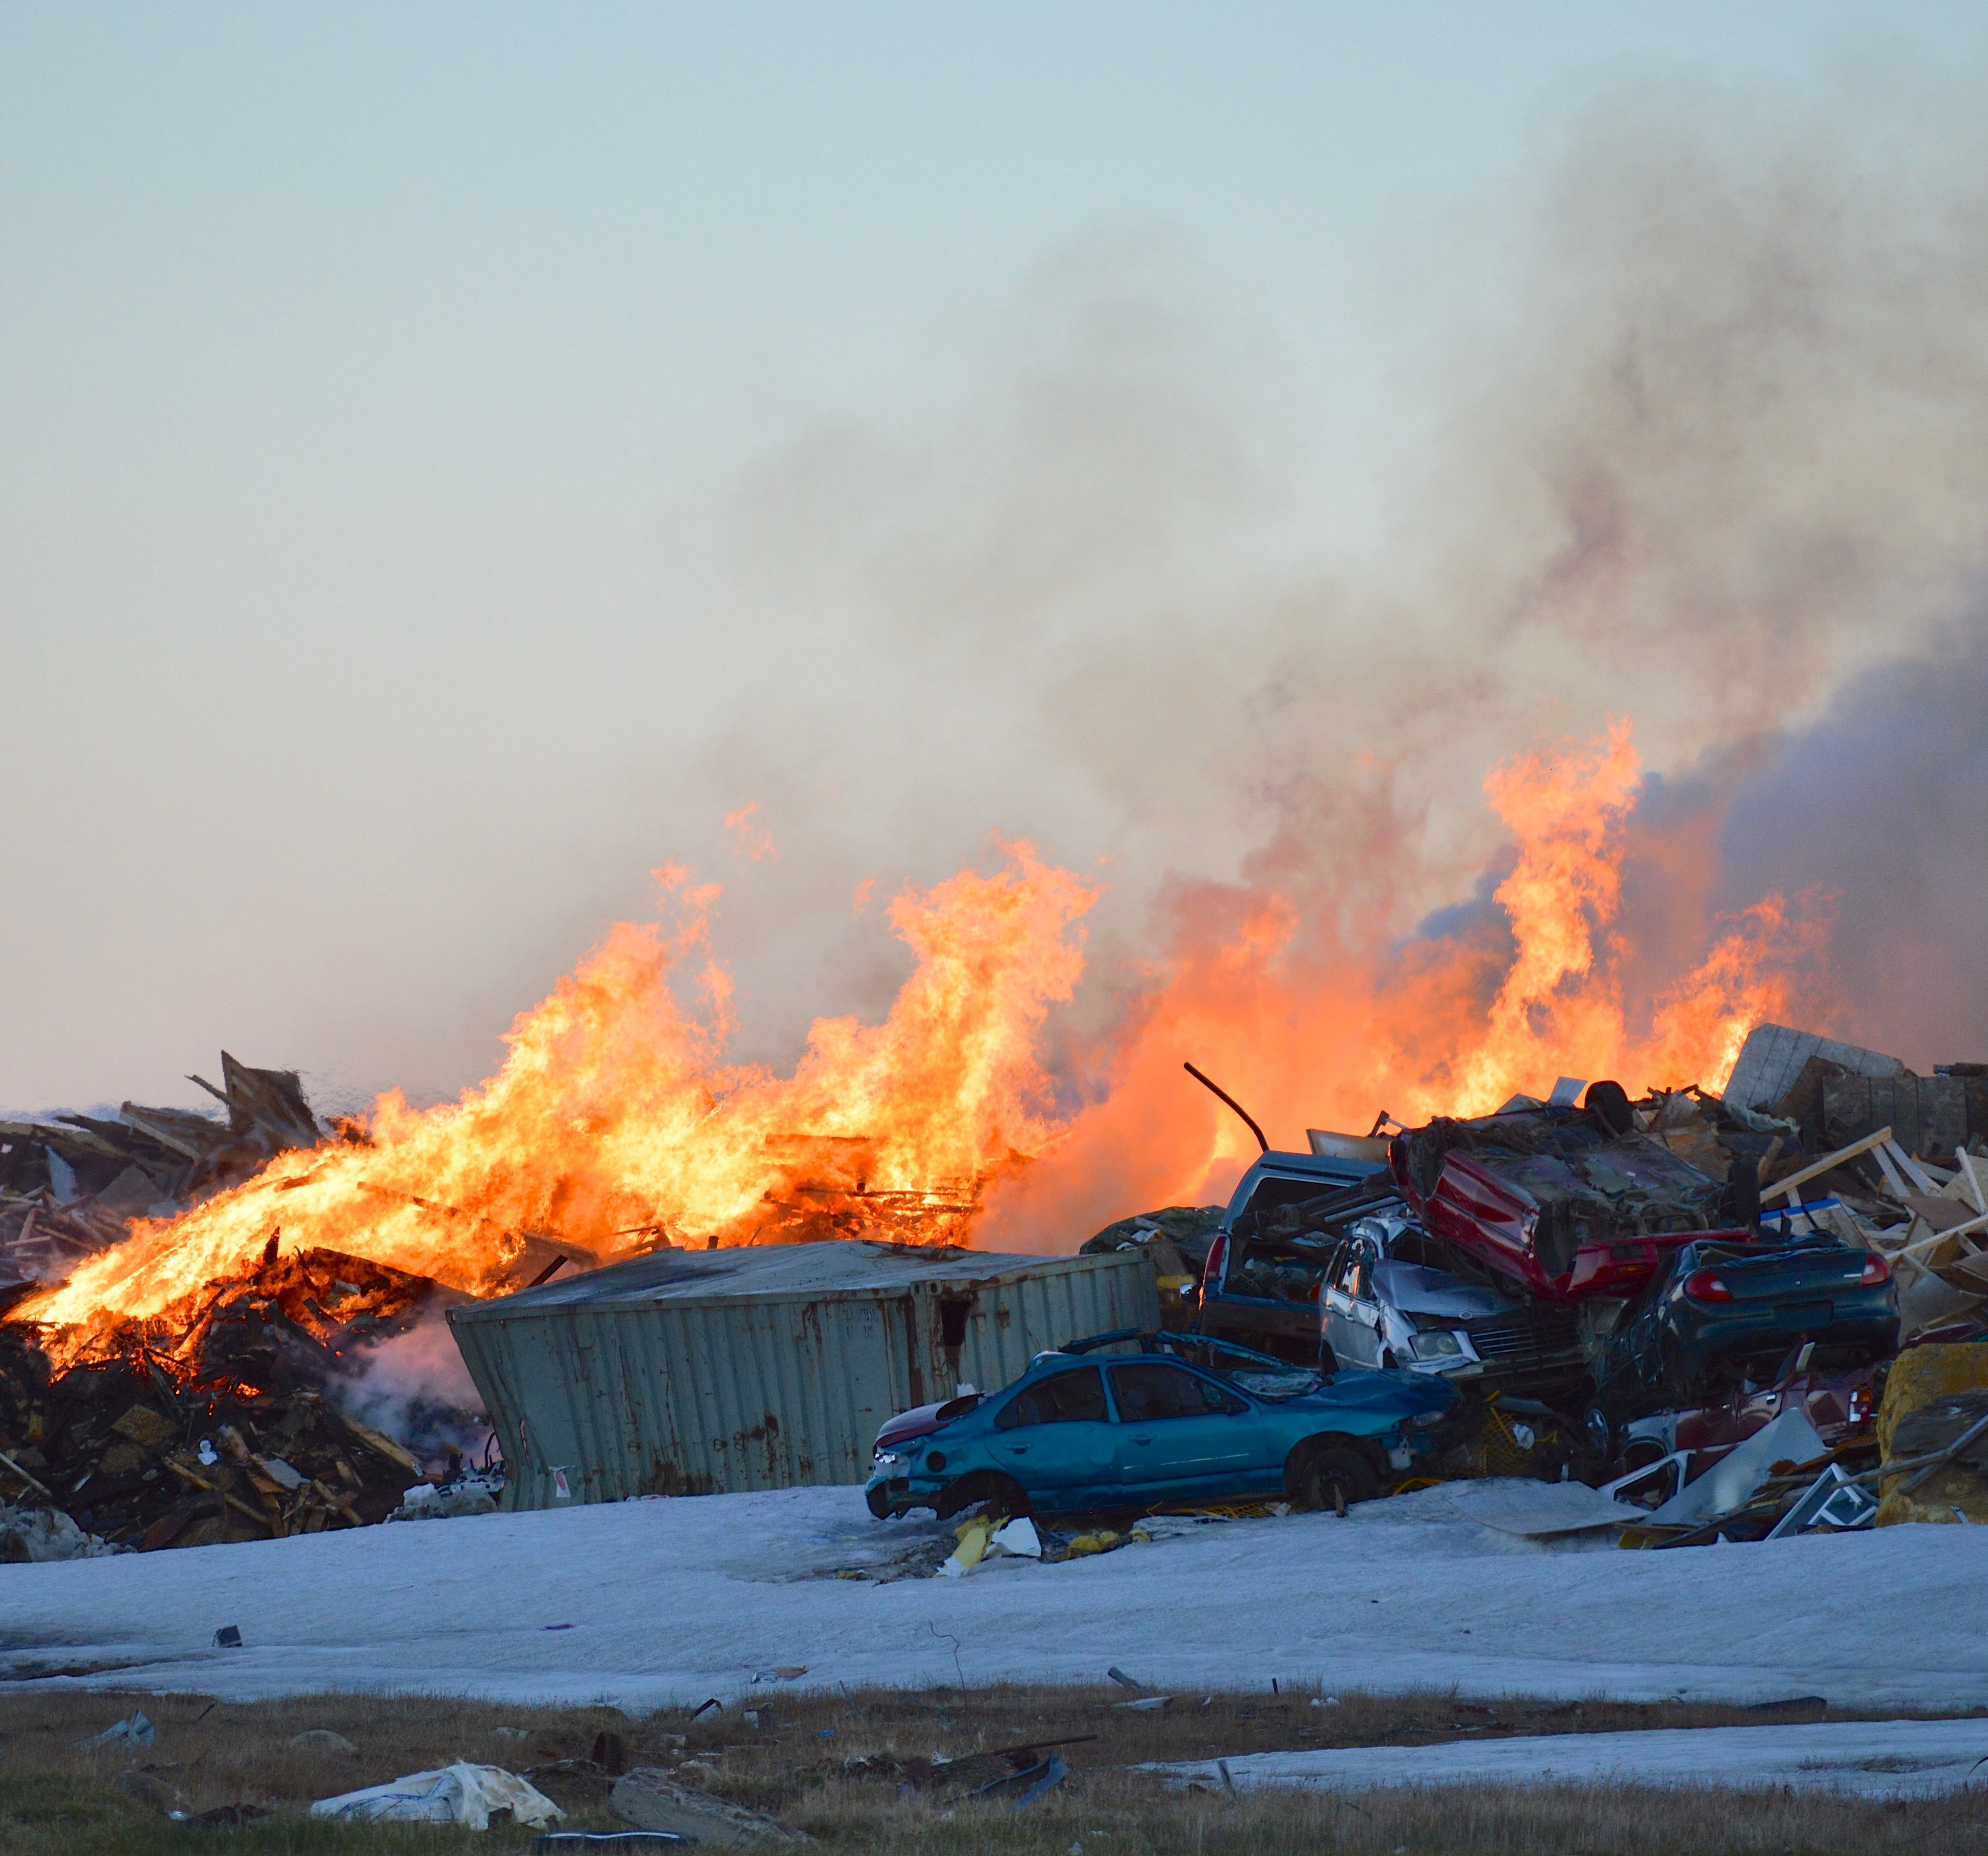 Here's how the latest dump fire in Iqaluit looked on June 20. (PHOTO BY STEVE DUCHARME)